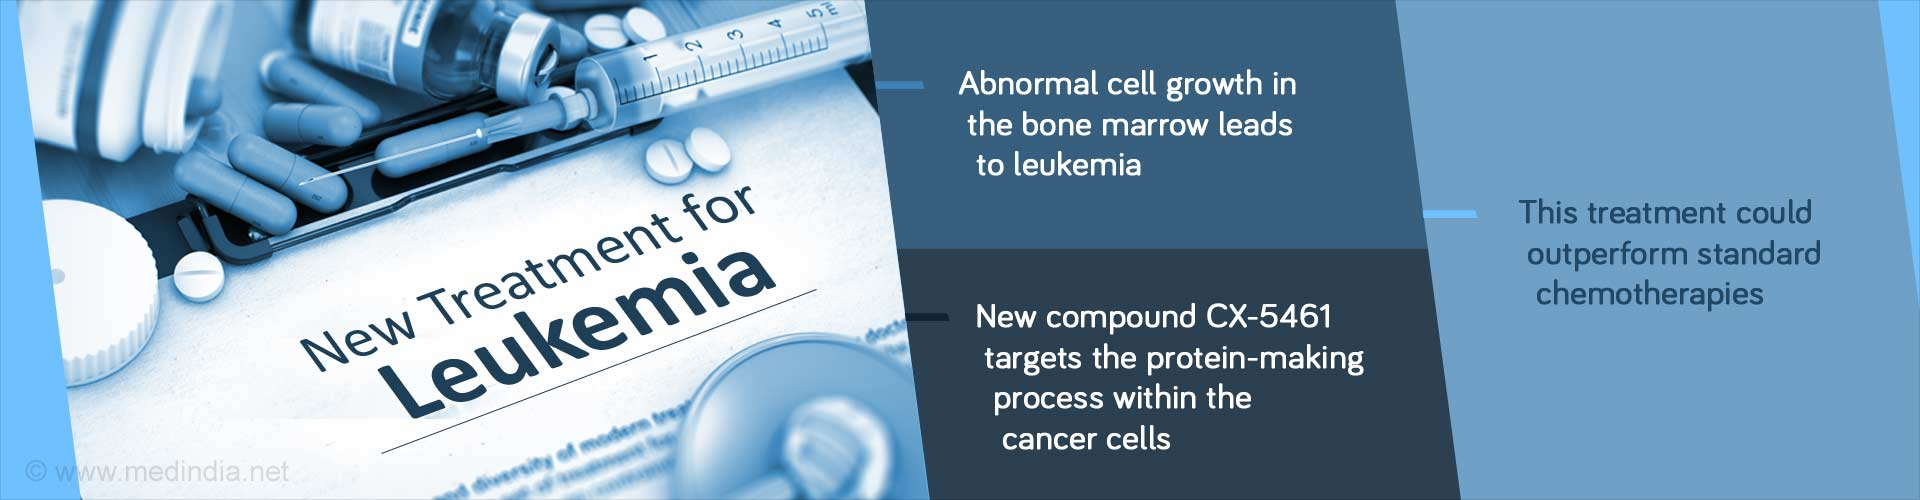 Novel Leukemia Treatment Outperforms Standard Chemotherapies